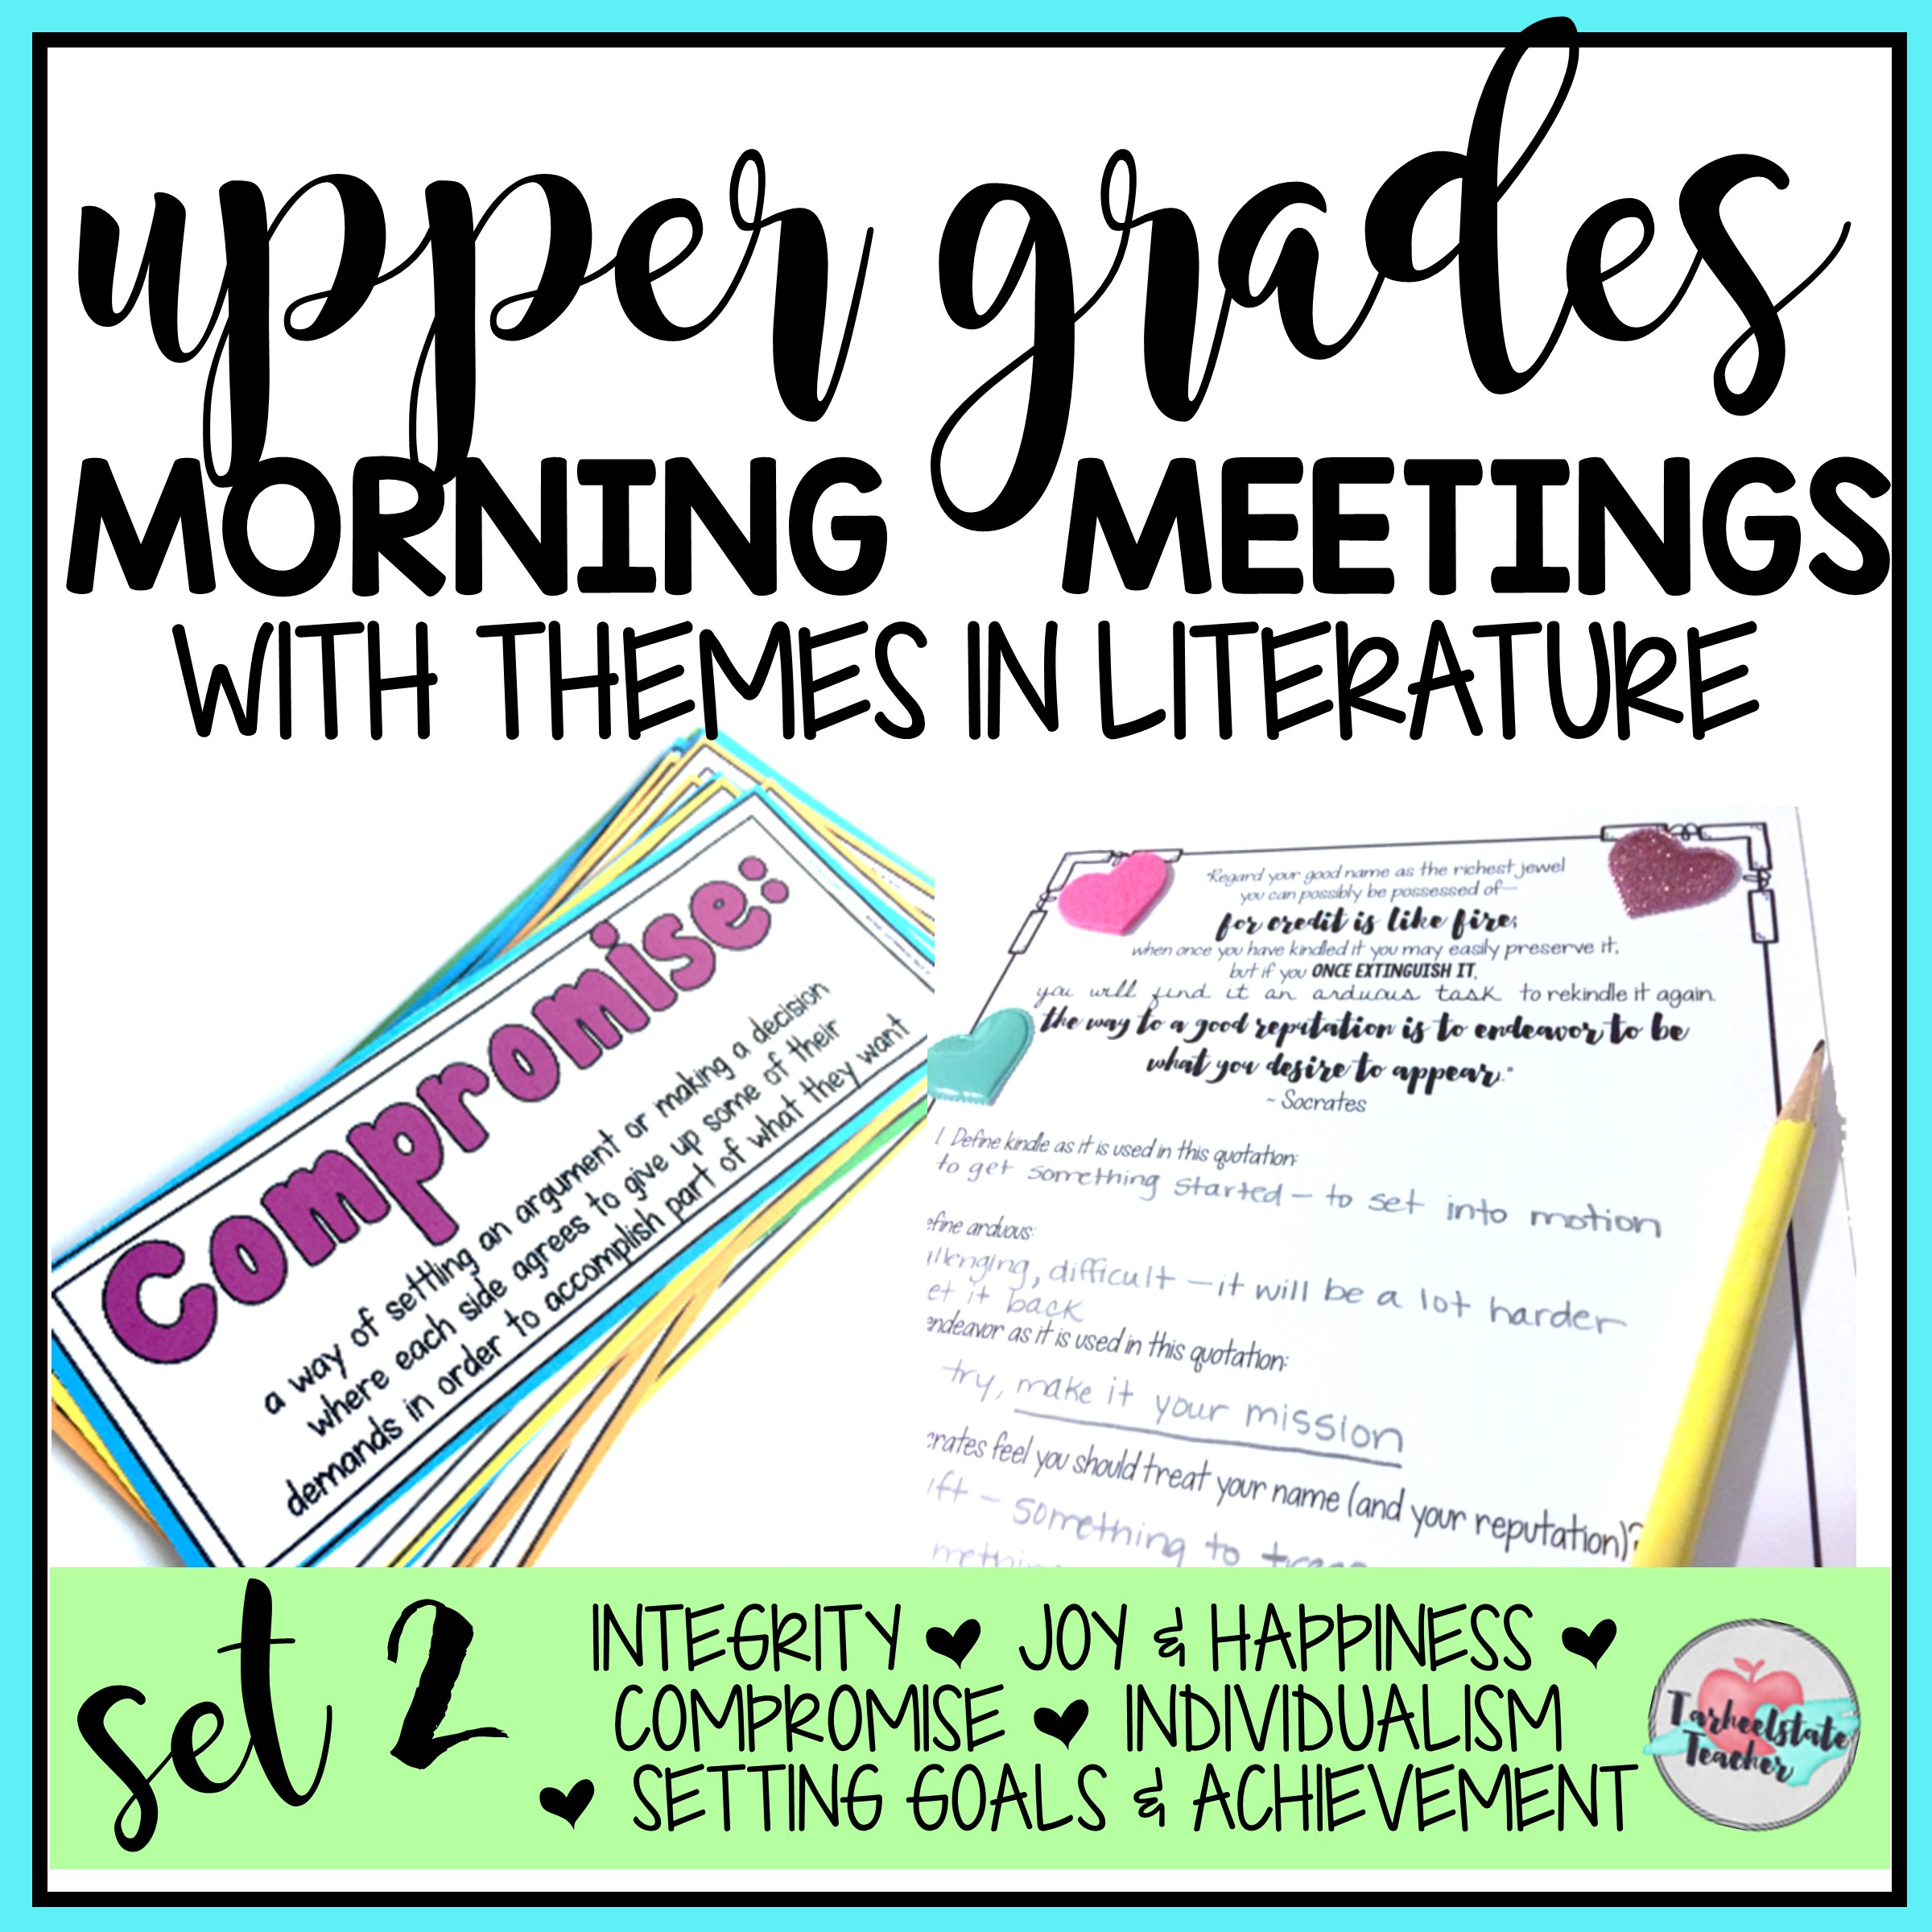 morning meeting made easy theme in literature set 2.JPG